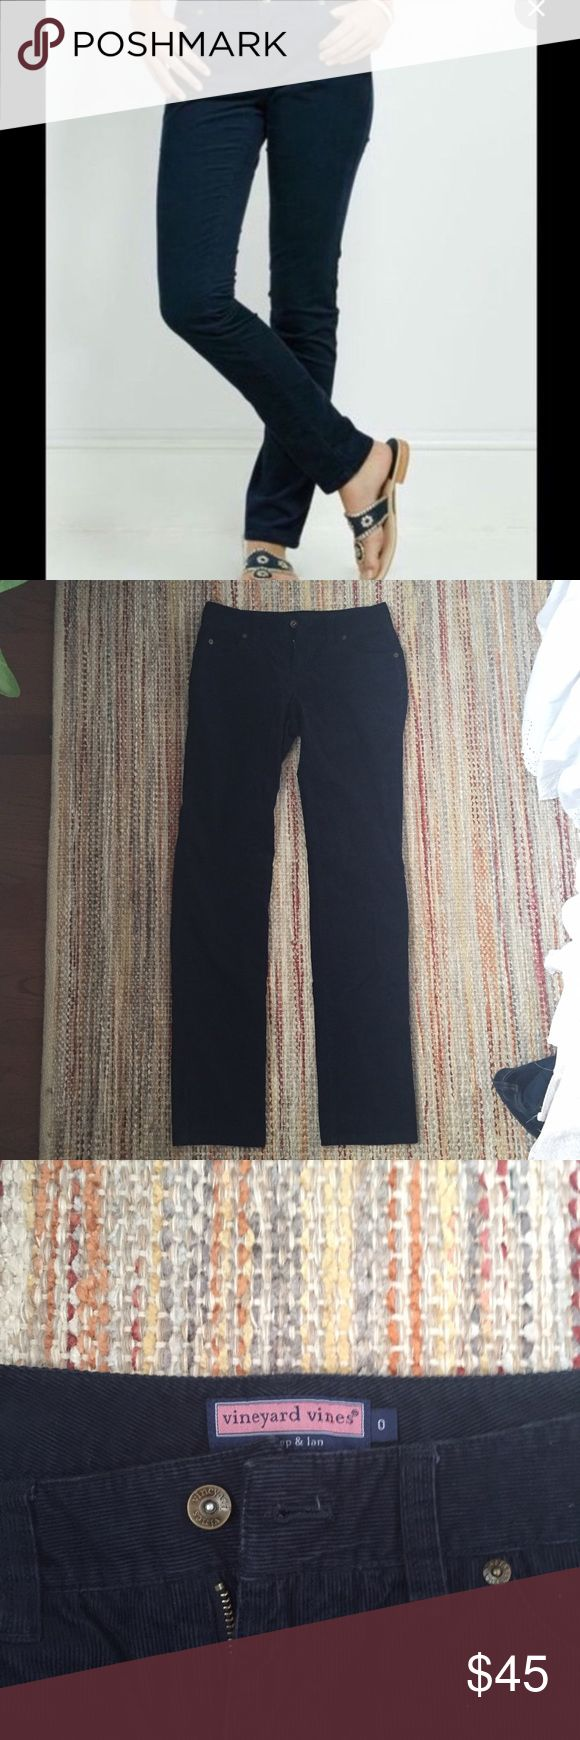 LIKE NEW Navy Vineyard Vines Cord Pants Great condition - bought from another seller but were too small on me! I'm willing to go lower on 🅿️🅿️ or eBay, but I want to make back what I paid! Vineyard Vines Pants